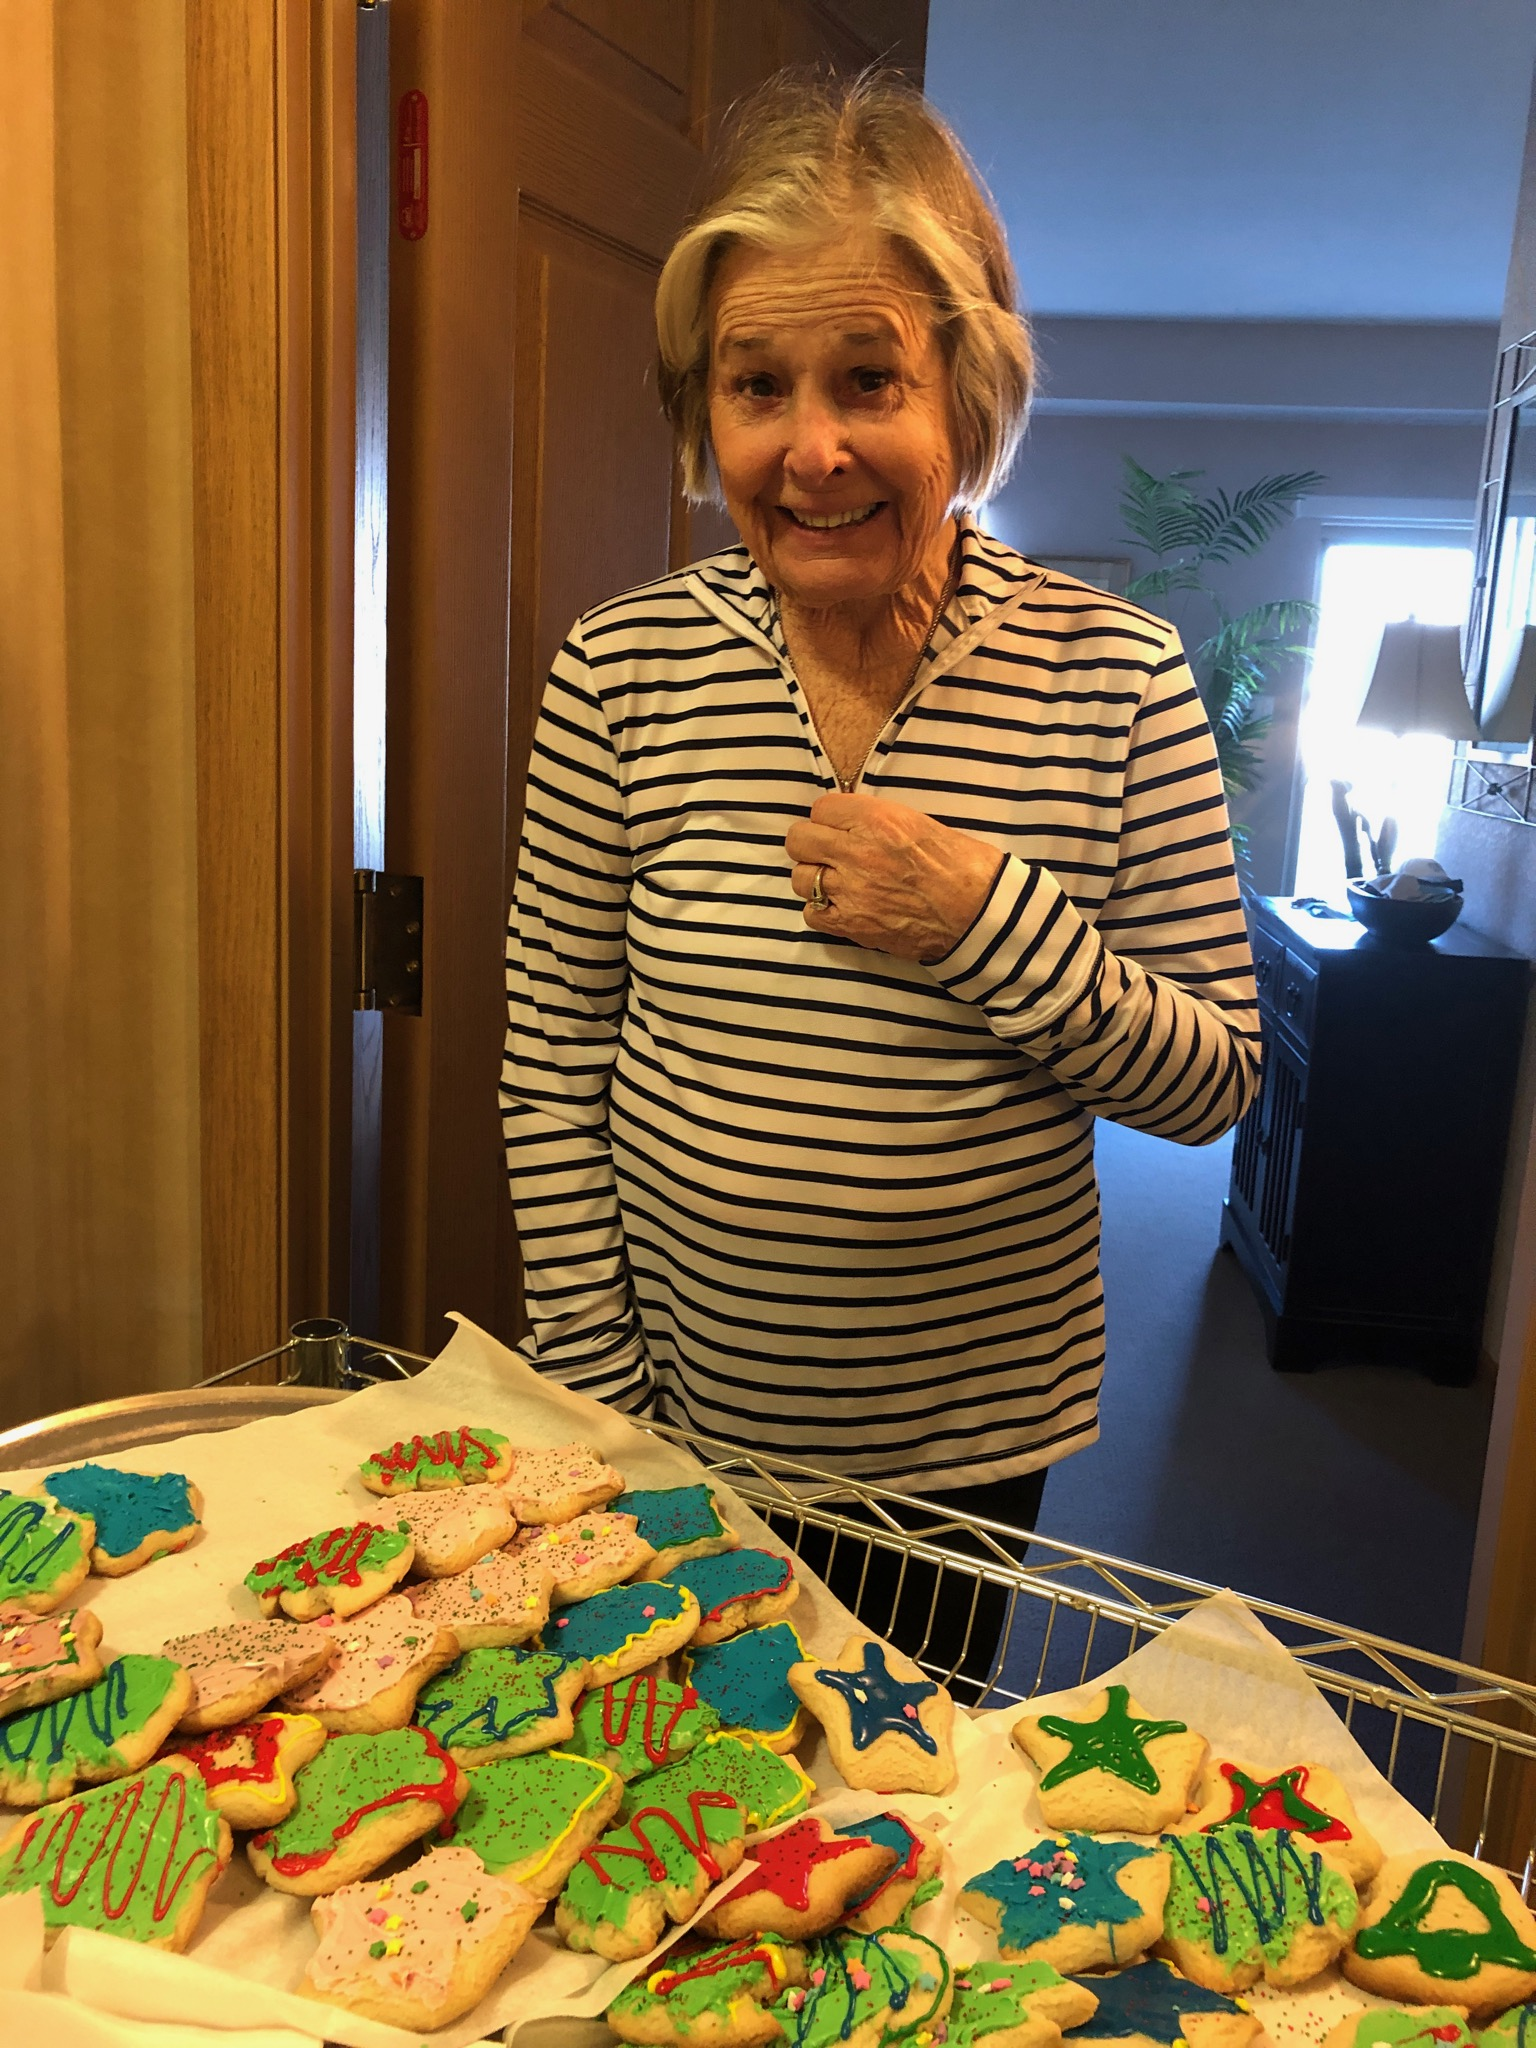 Marilyn was Super surprised to received homemade sugar cookies from our own Chef Bobby on National Cookie Day.